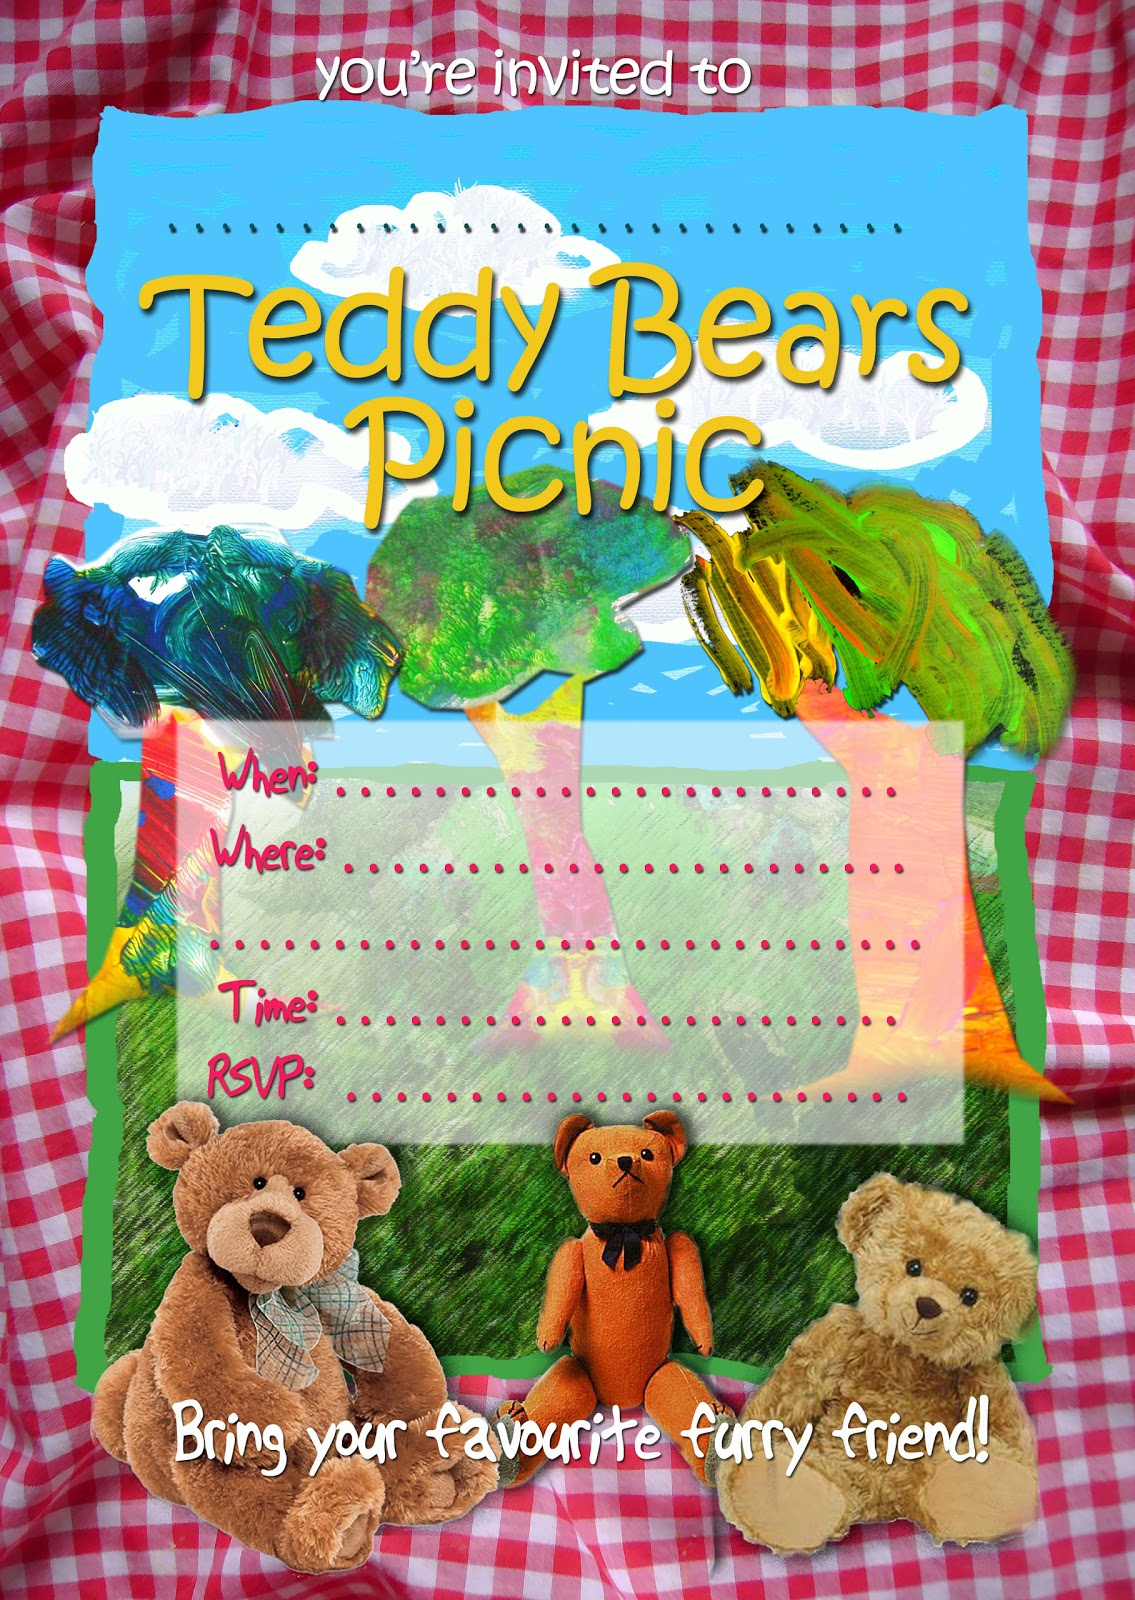 Free kids party invitations teddy bears picnic invitation teddy bears picnic invitation filmwisefo